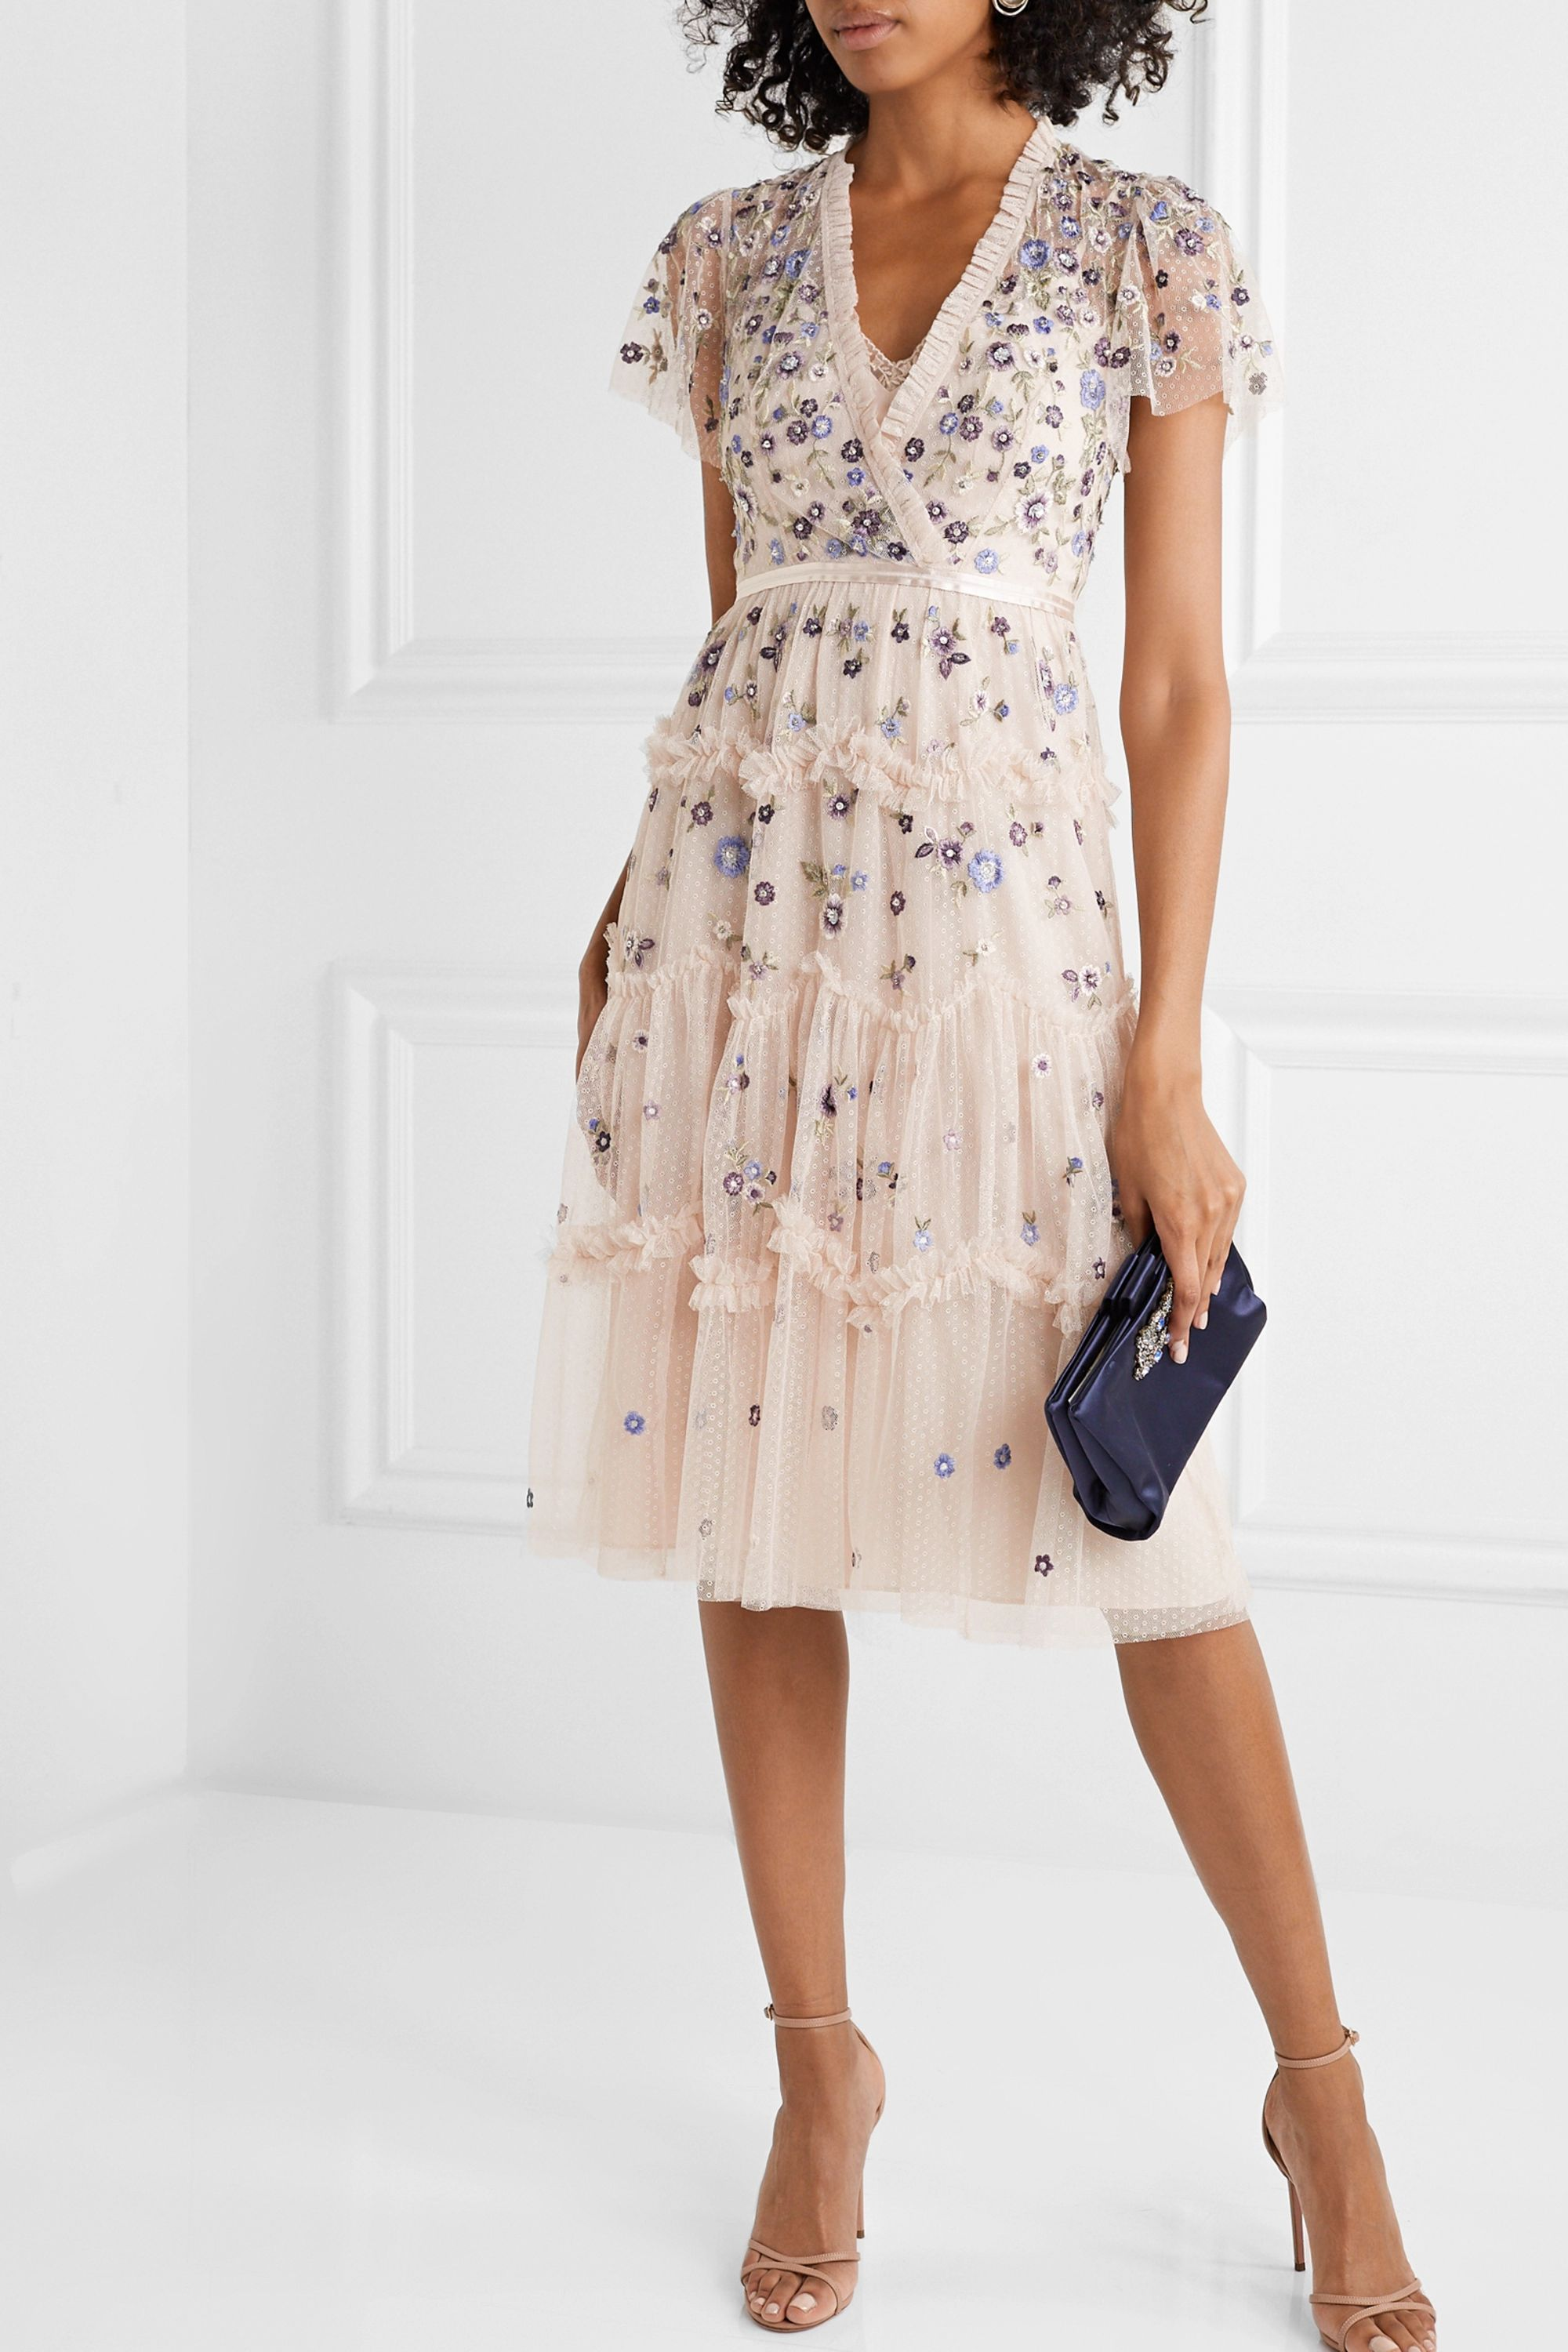 Prairie Flora ruffled embellished embroidered tulle dress